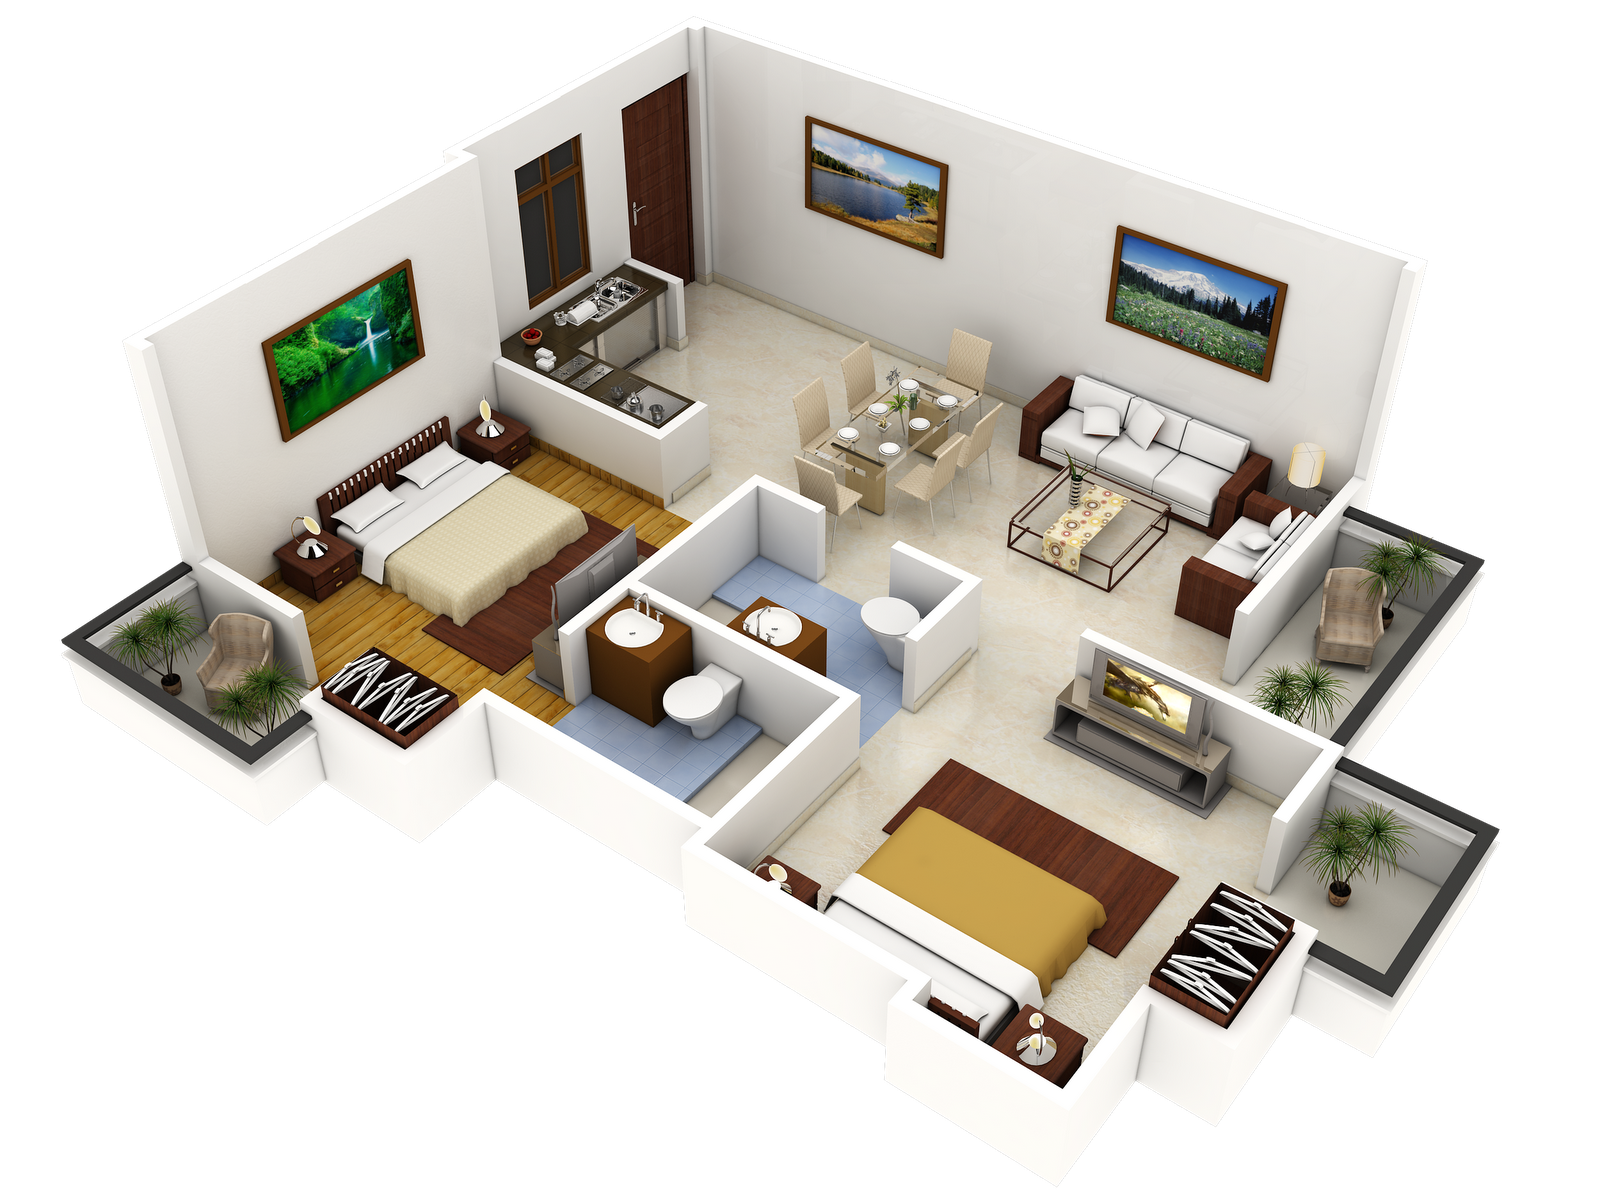 Good 3d House Blueprints And Plans With 3d House Plan 3d Floor Plans Pinterest 3d House